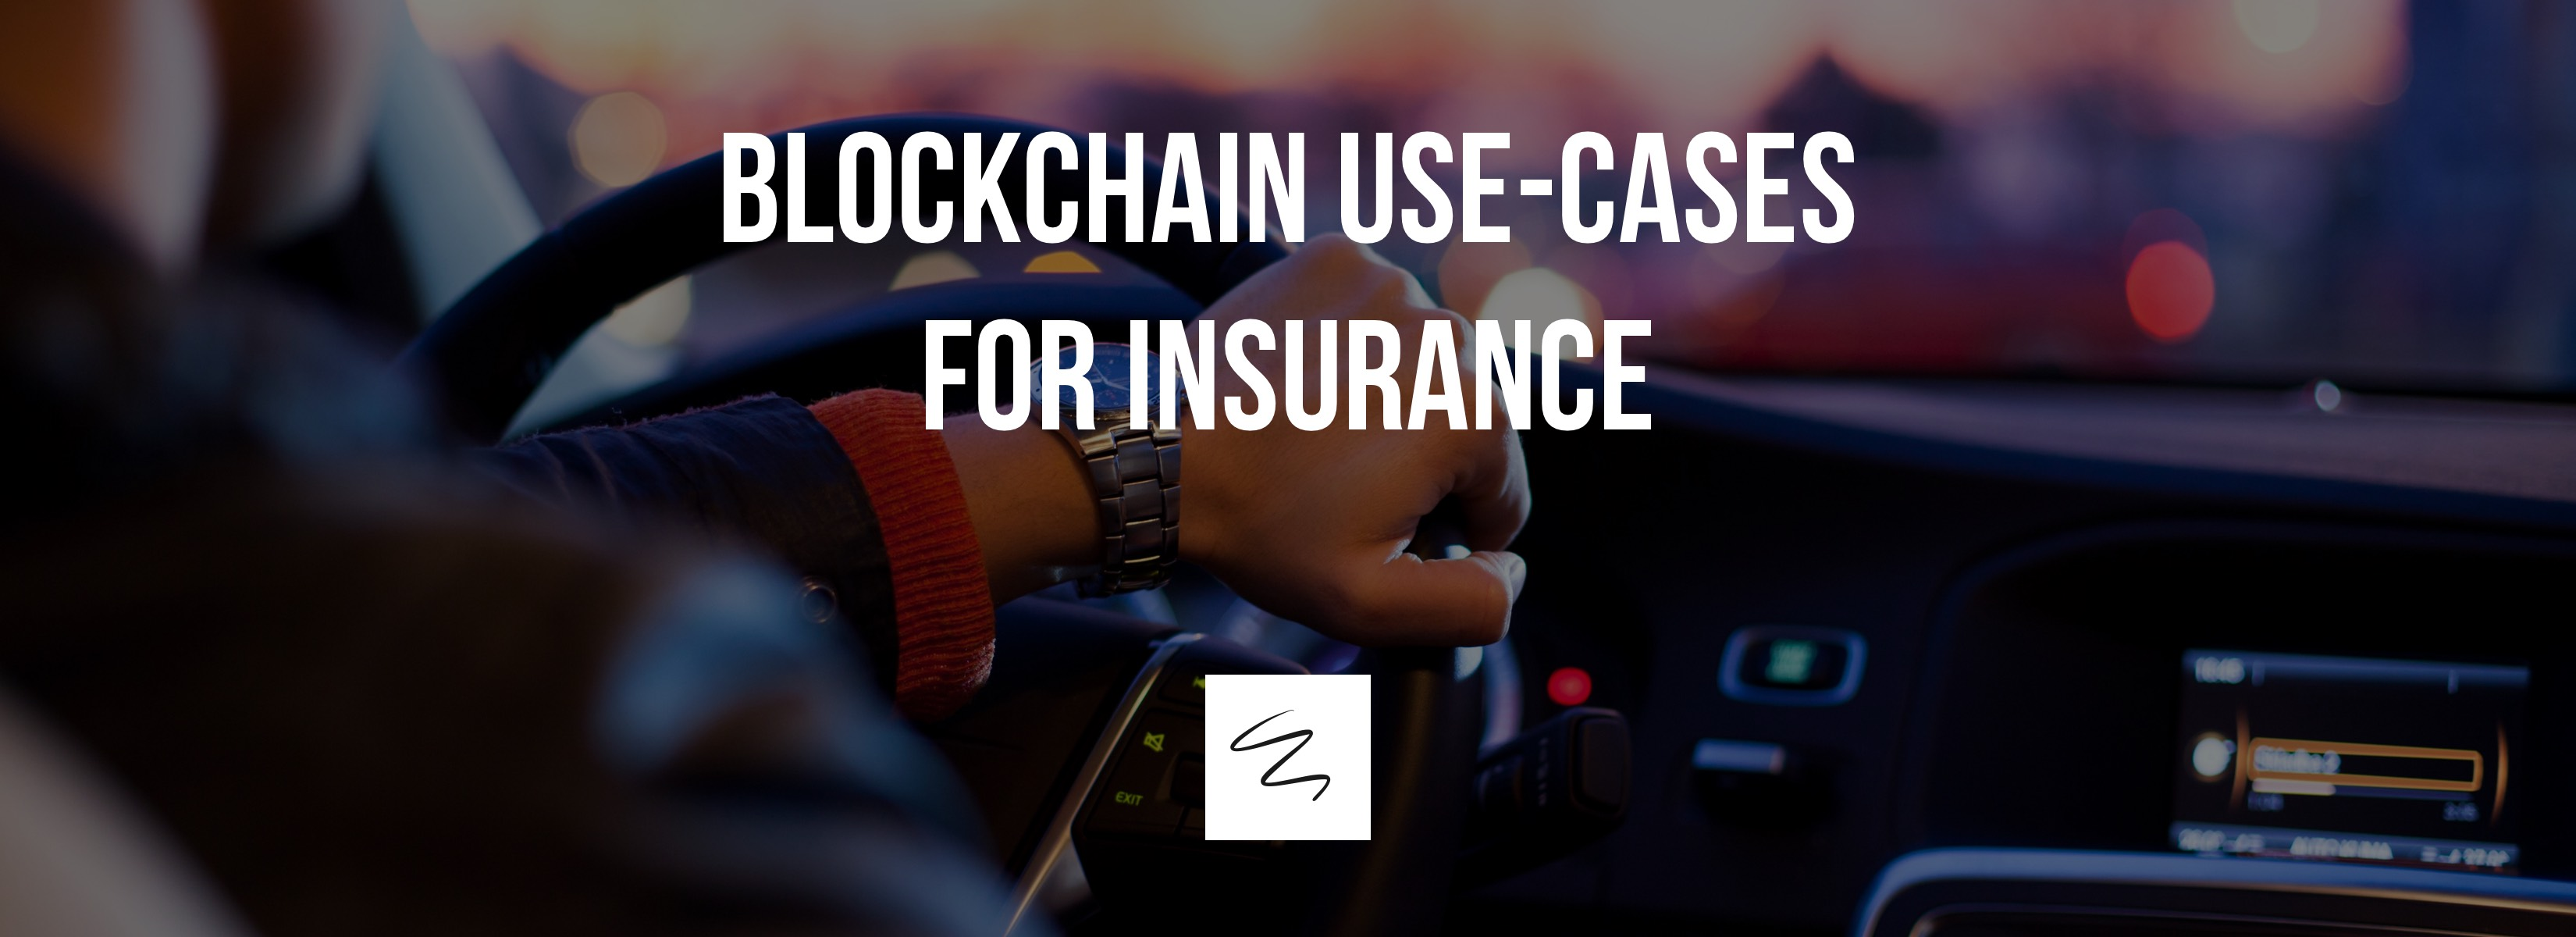 Blockchain use-cases for Insurance Industry in 2018